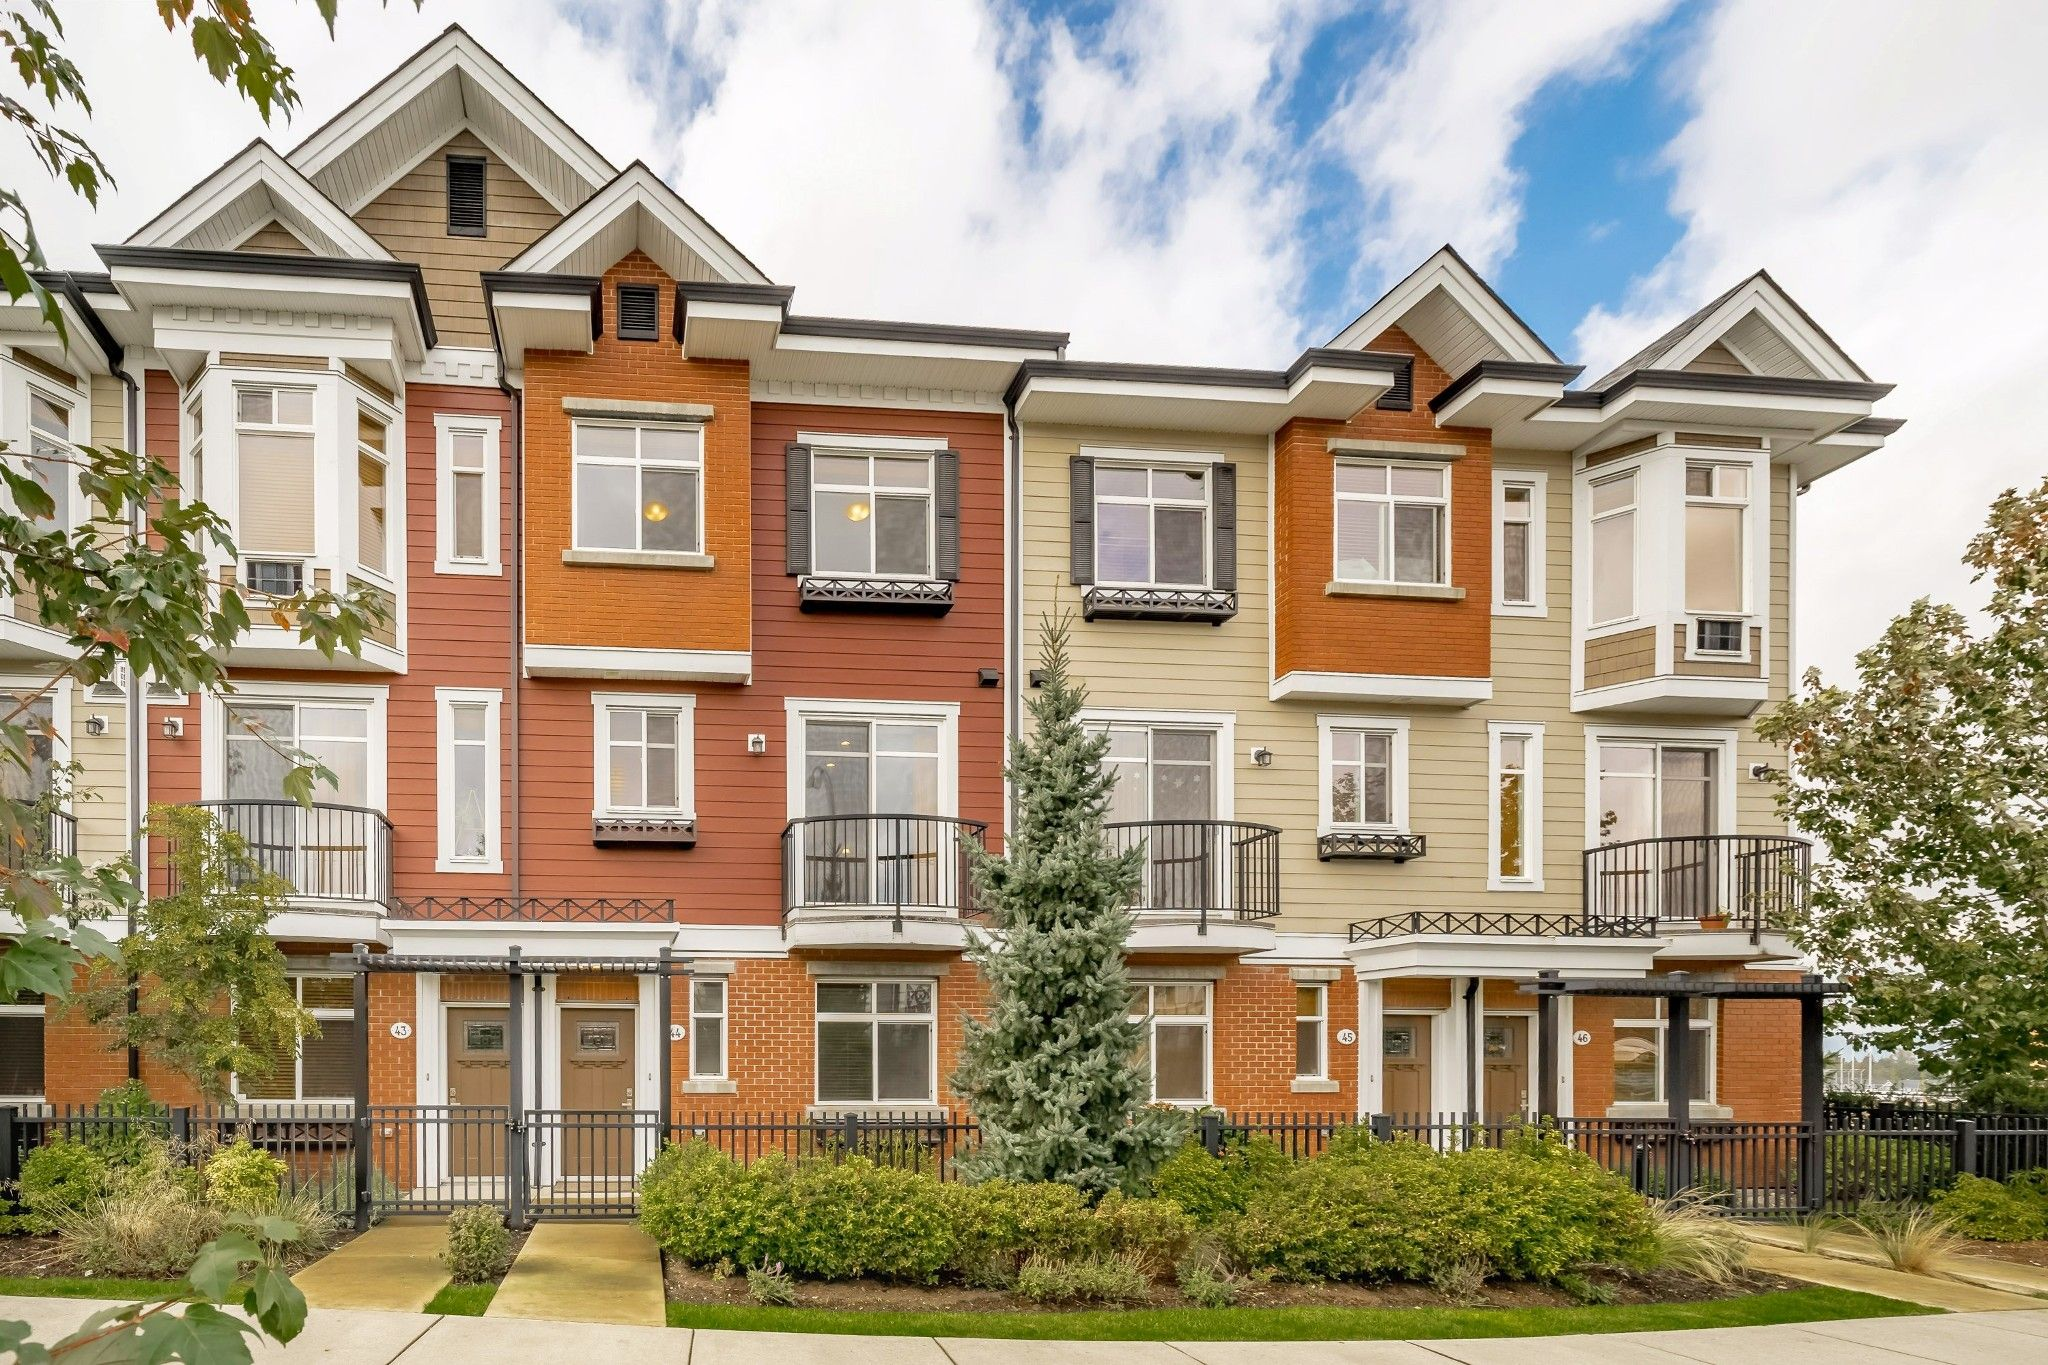 """Main Photo: 44 8068 207 Street in Langley: Willoughby Heights Townhouse for sale in """"Willoughby"""" : MLS®# R2410149"""